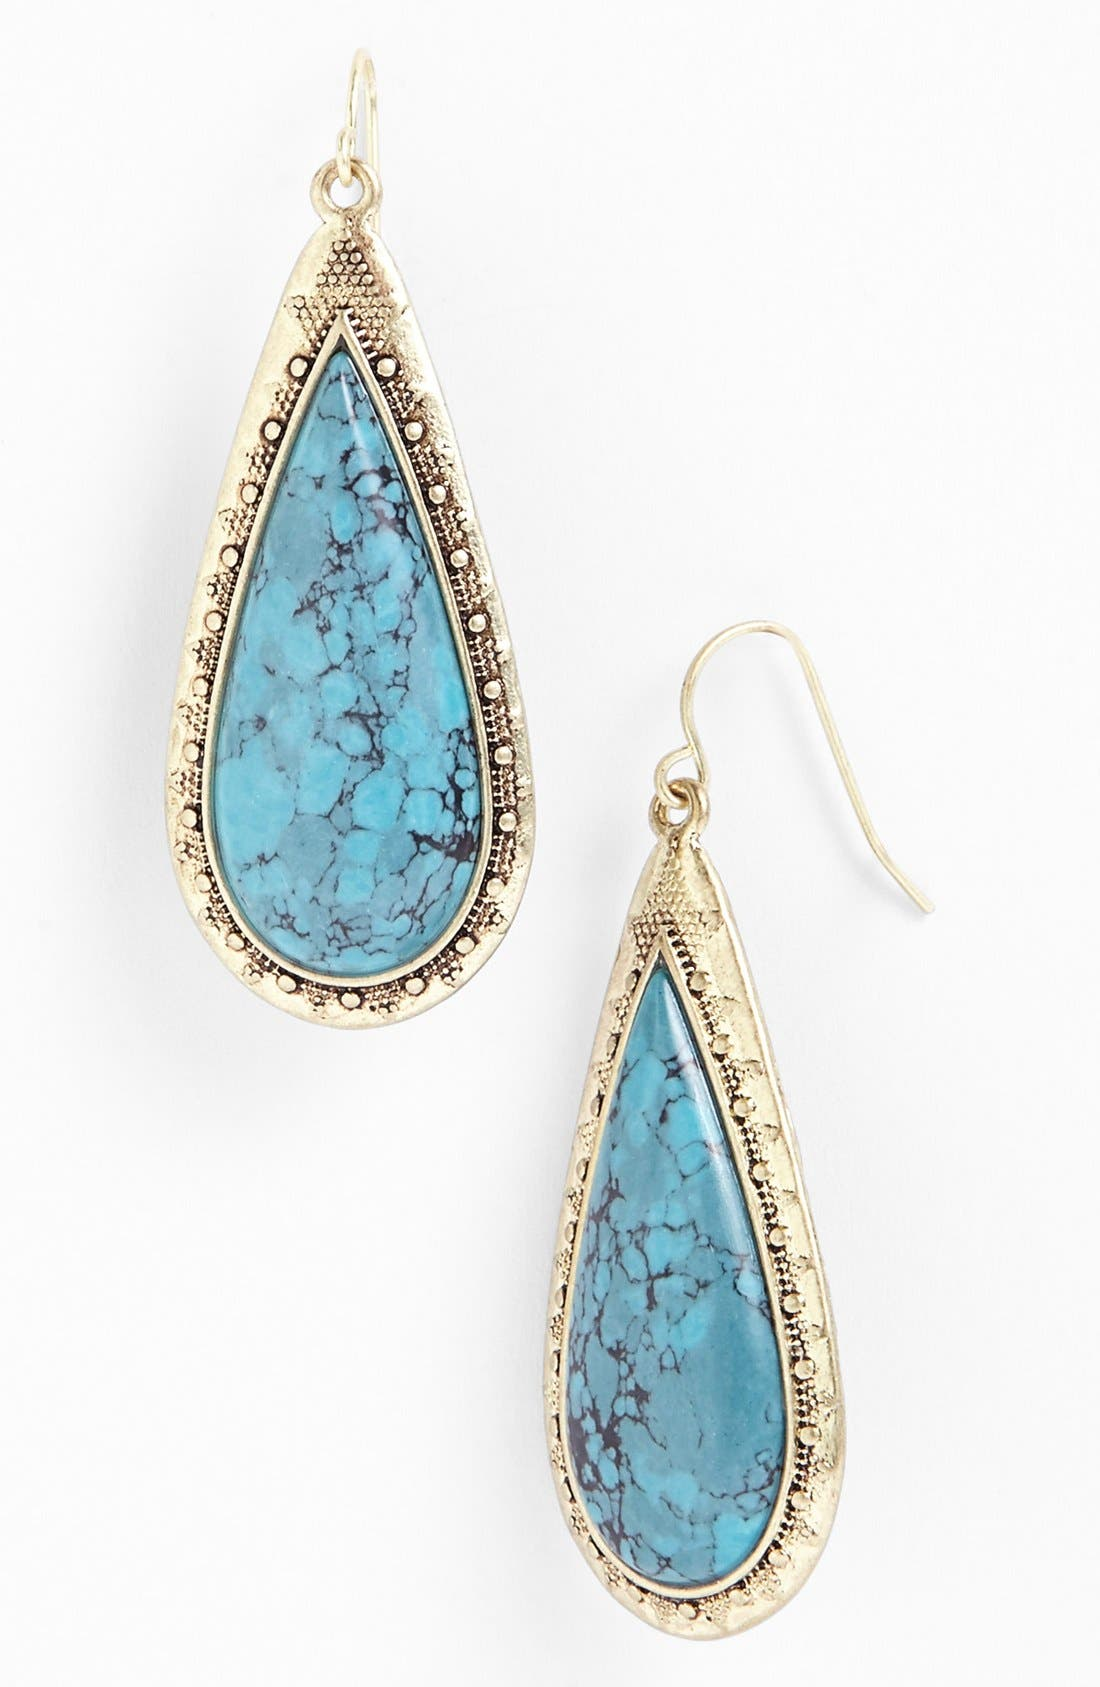 Main Image - Lauren Ralph Lauren Long Stone Cabochon Teardrop Earrings